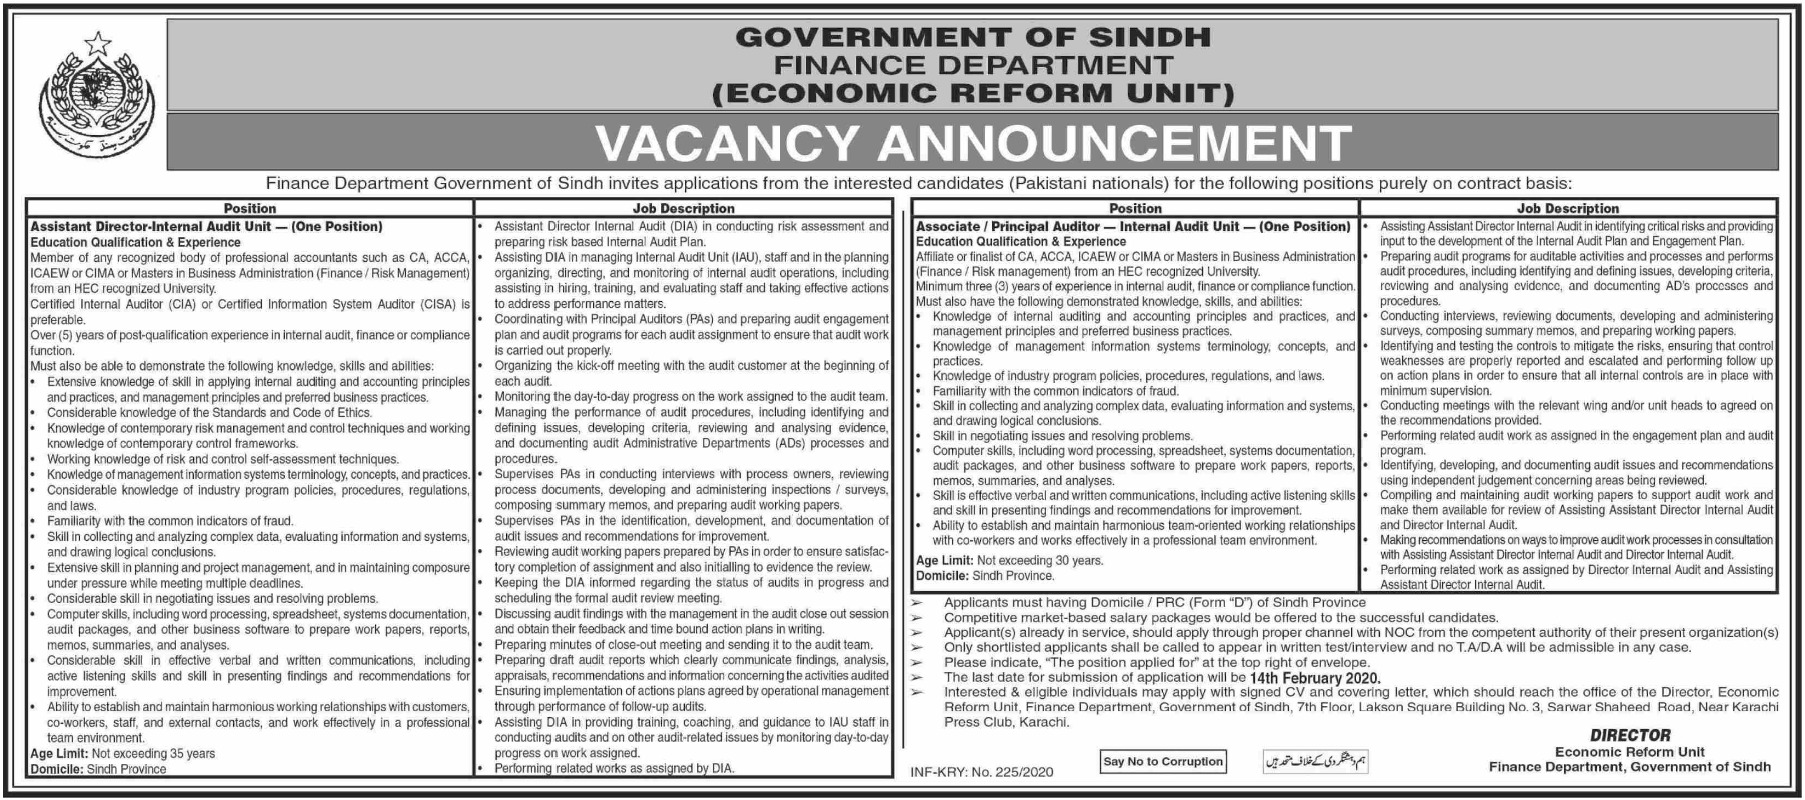 Finance Department Government of Sindh Jobs 2020